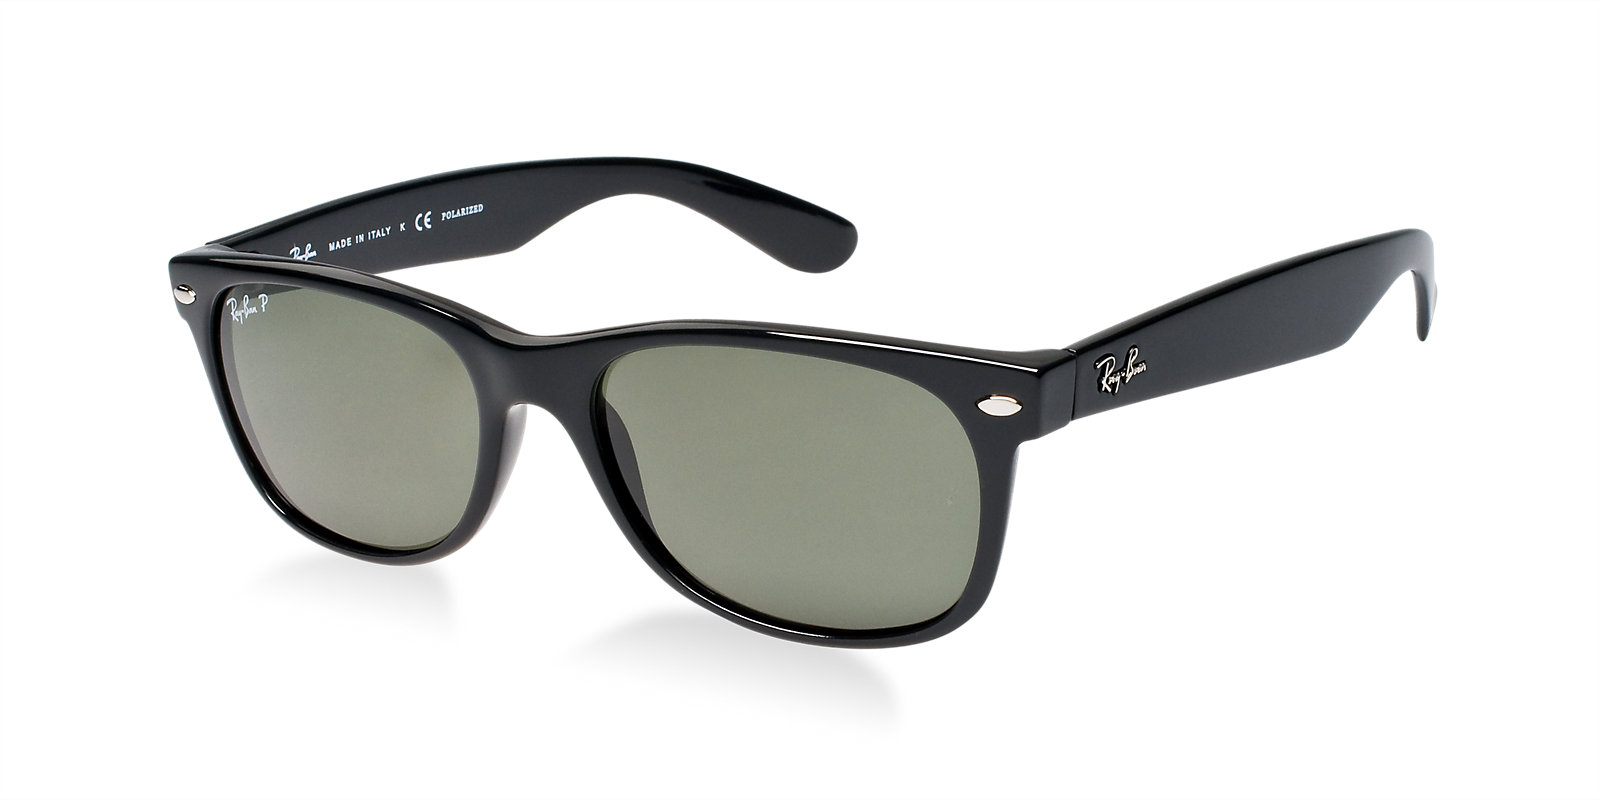 81e4d48800255 Previous  Next. Previous  Next. RAY-BAN RB2132 901 58 BLACK POLARIZED NEW  WAYFARER SUNGLASSES